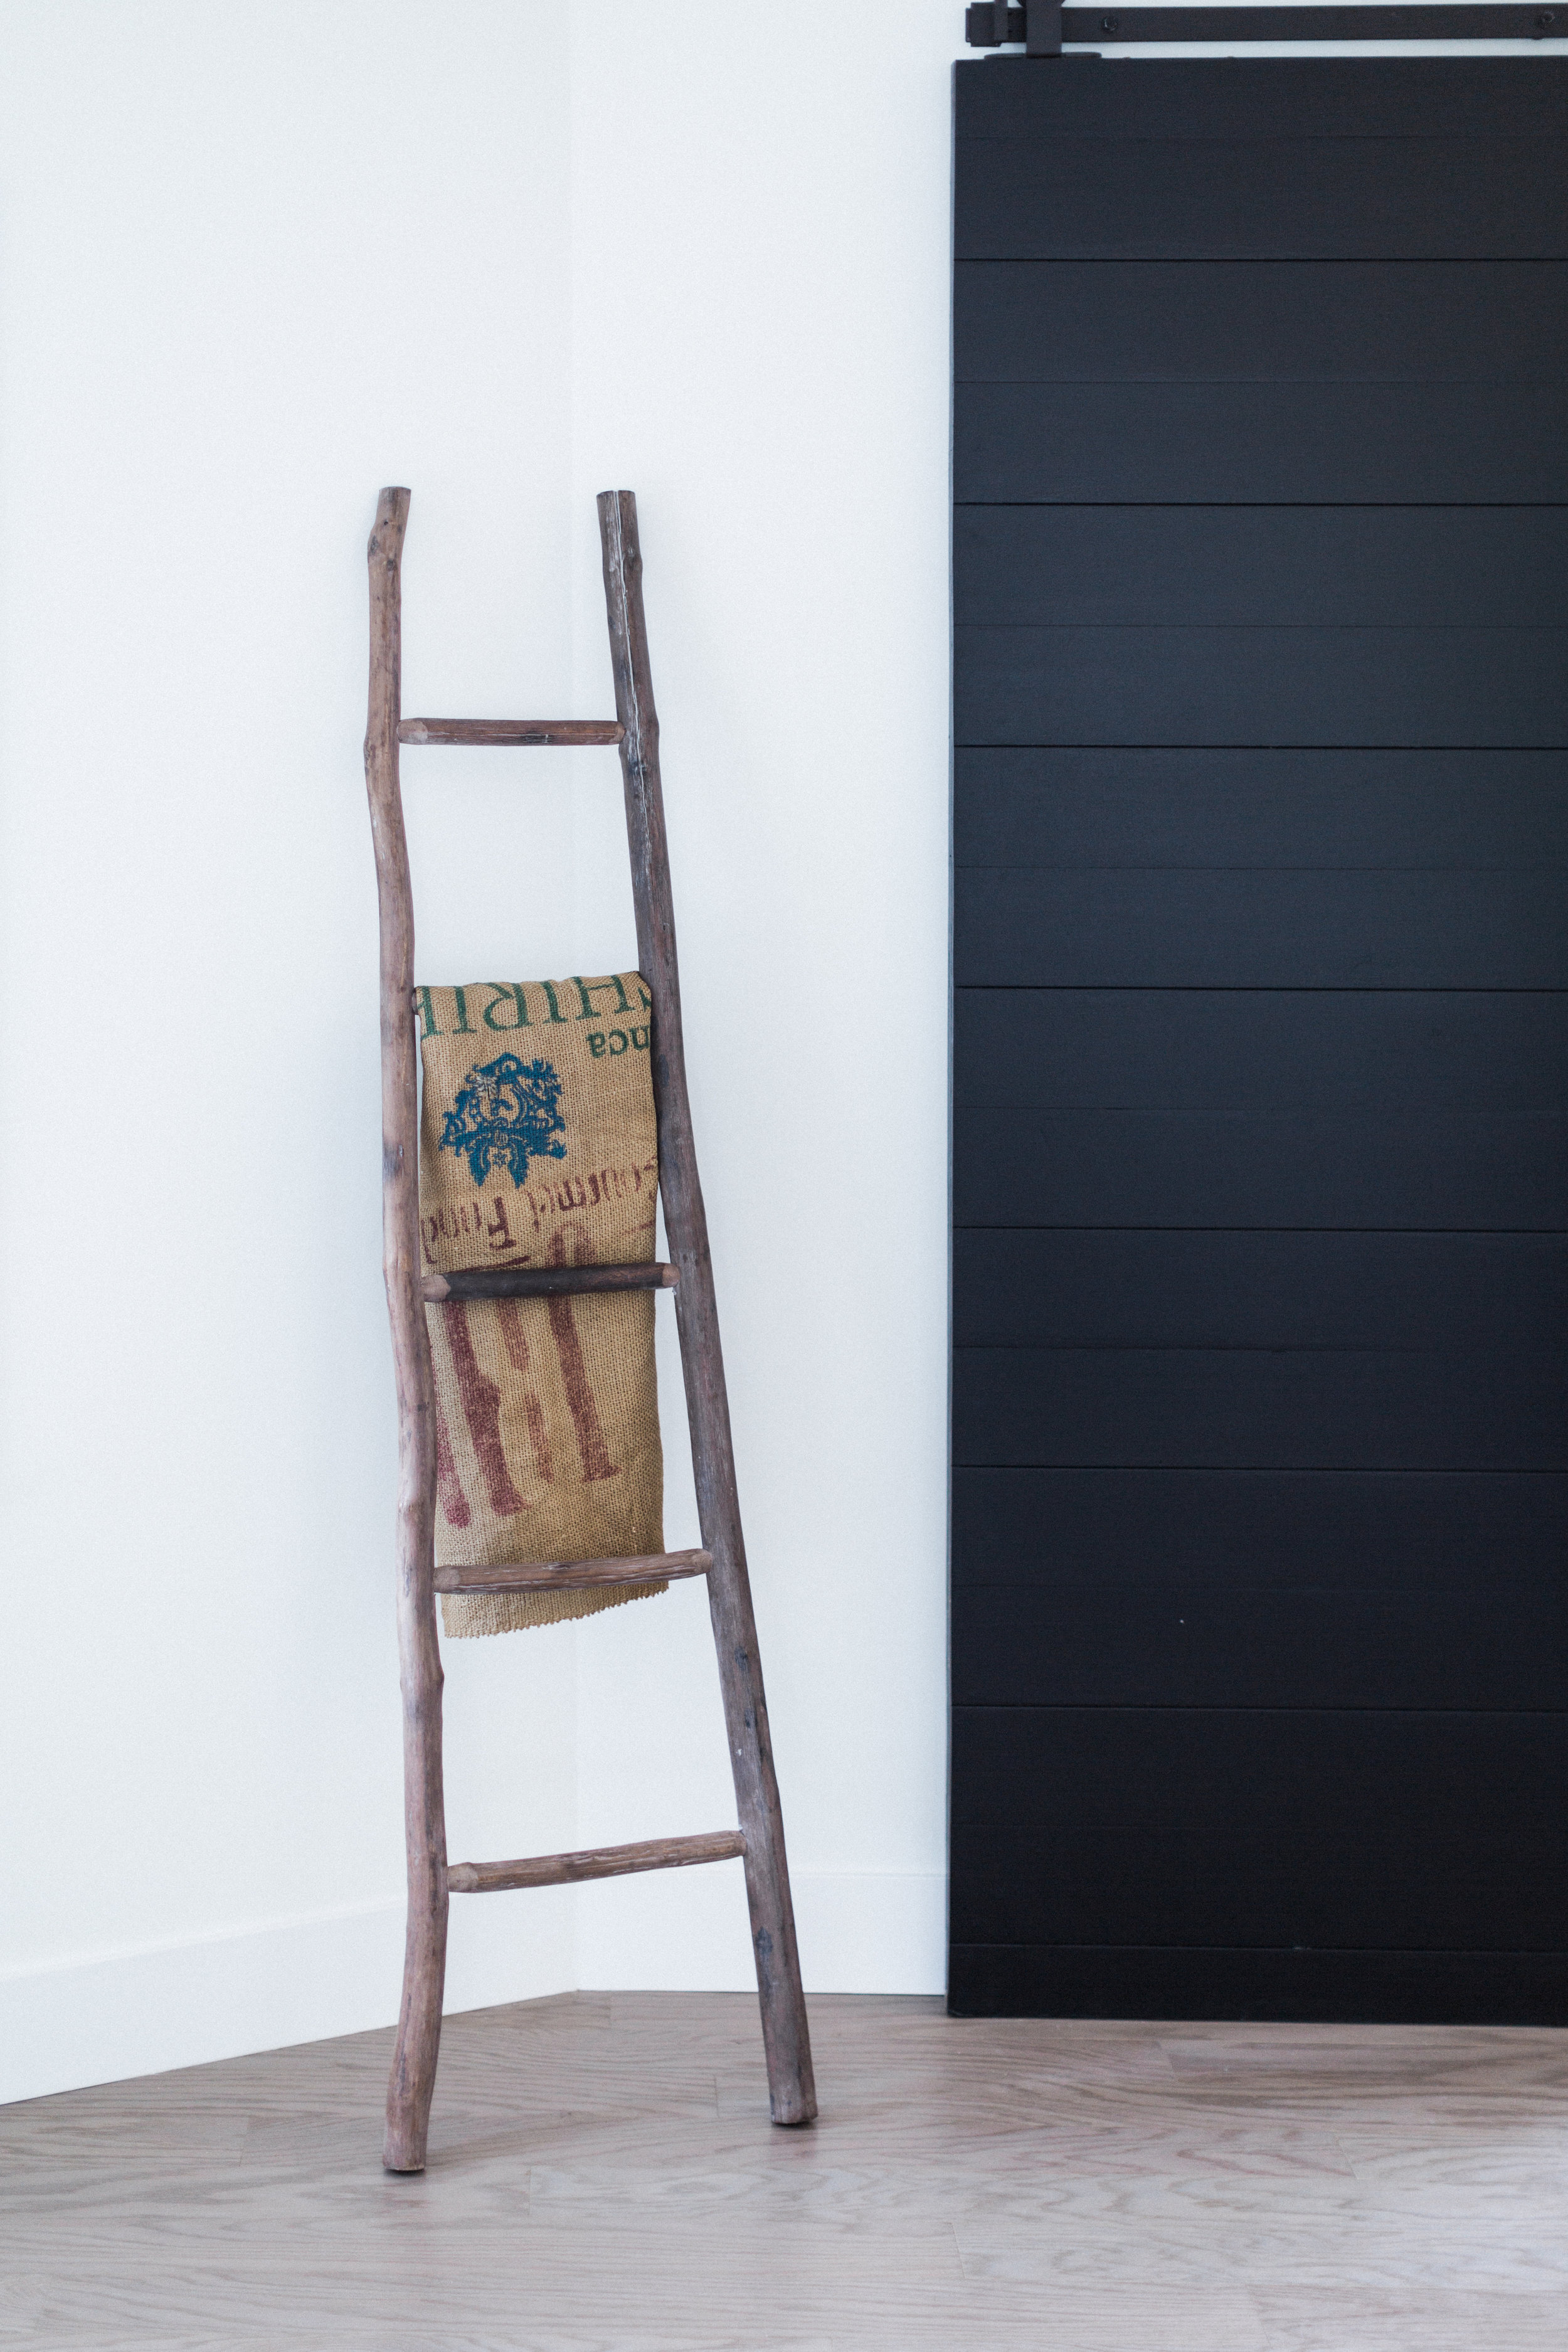 We'll move on to other rooms soon, but pretty please look at this rustic wood ladder next to the rad sliding barn door our client used. A burlap coffee sack is casually placed there as if by accident (riiiiiiiiggghhhht).